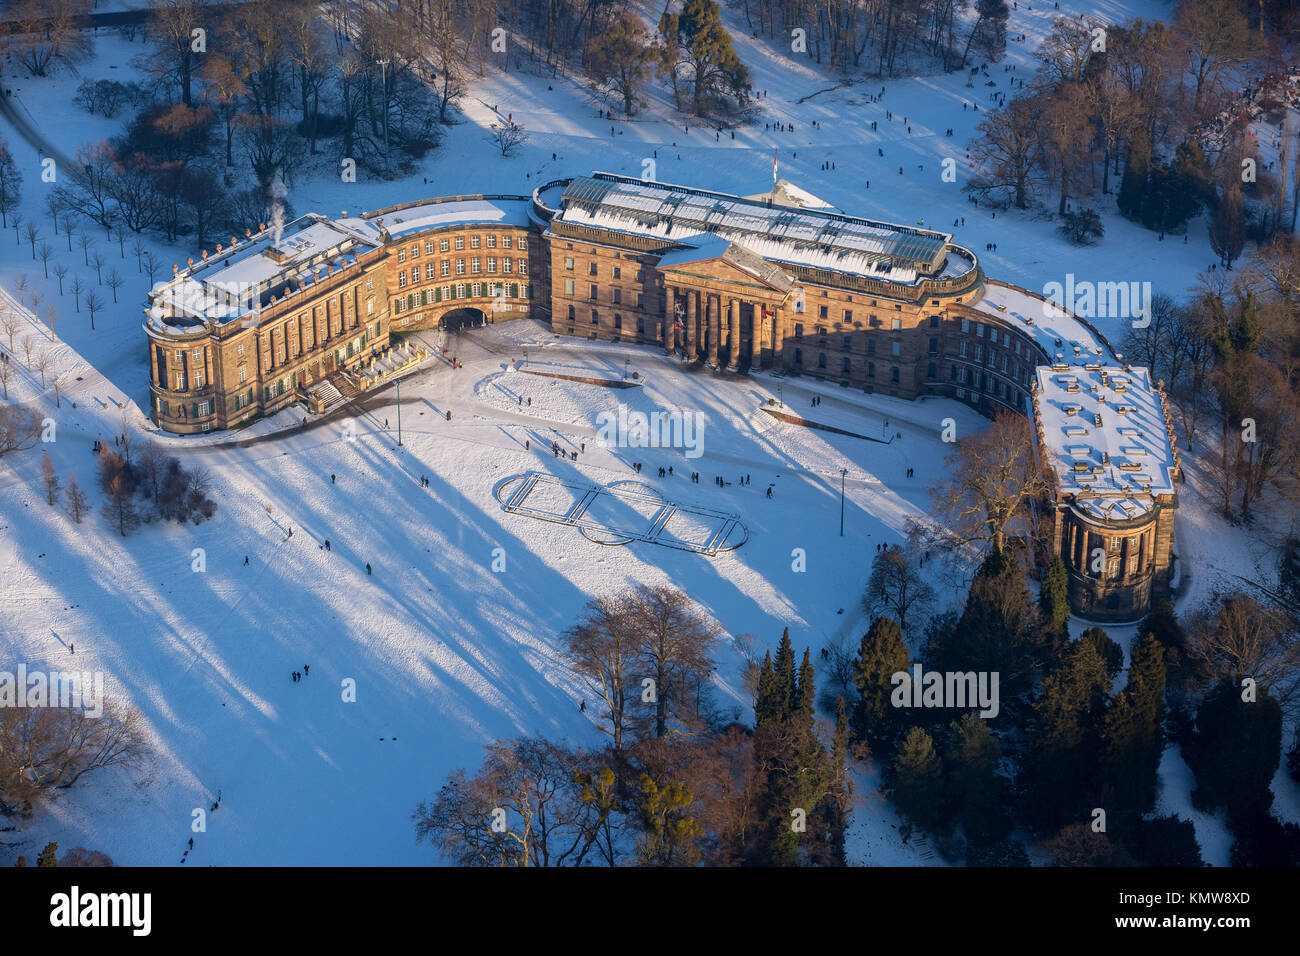 Wilhelmshöhe Palace is located in the mountain park Wilhelmshöhe Kassel, World Heritage Site, the style - Stock Image